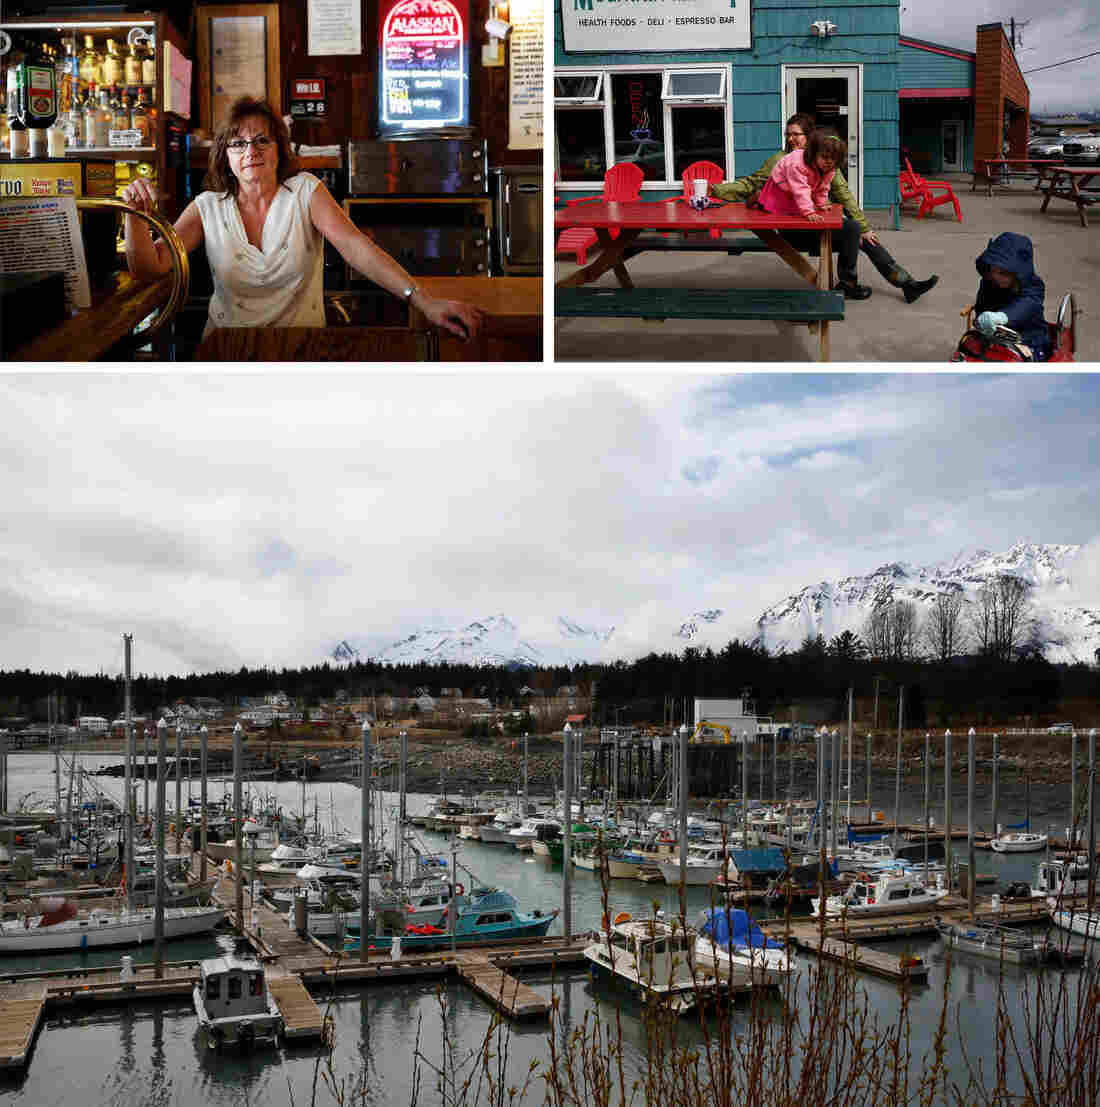 What It's Like To Live In A Small, Rural, Politically Divided Town